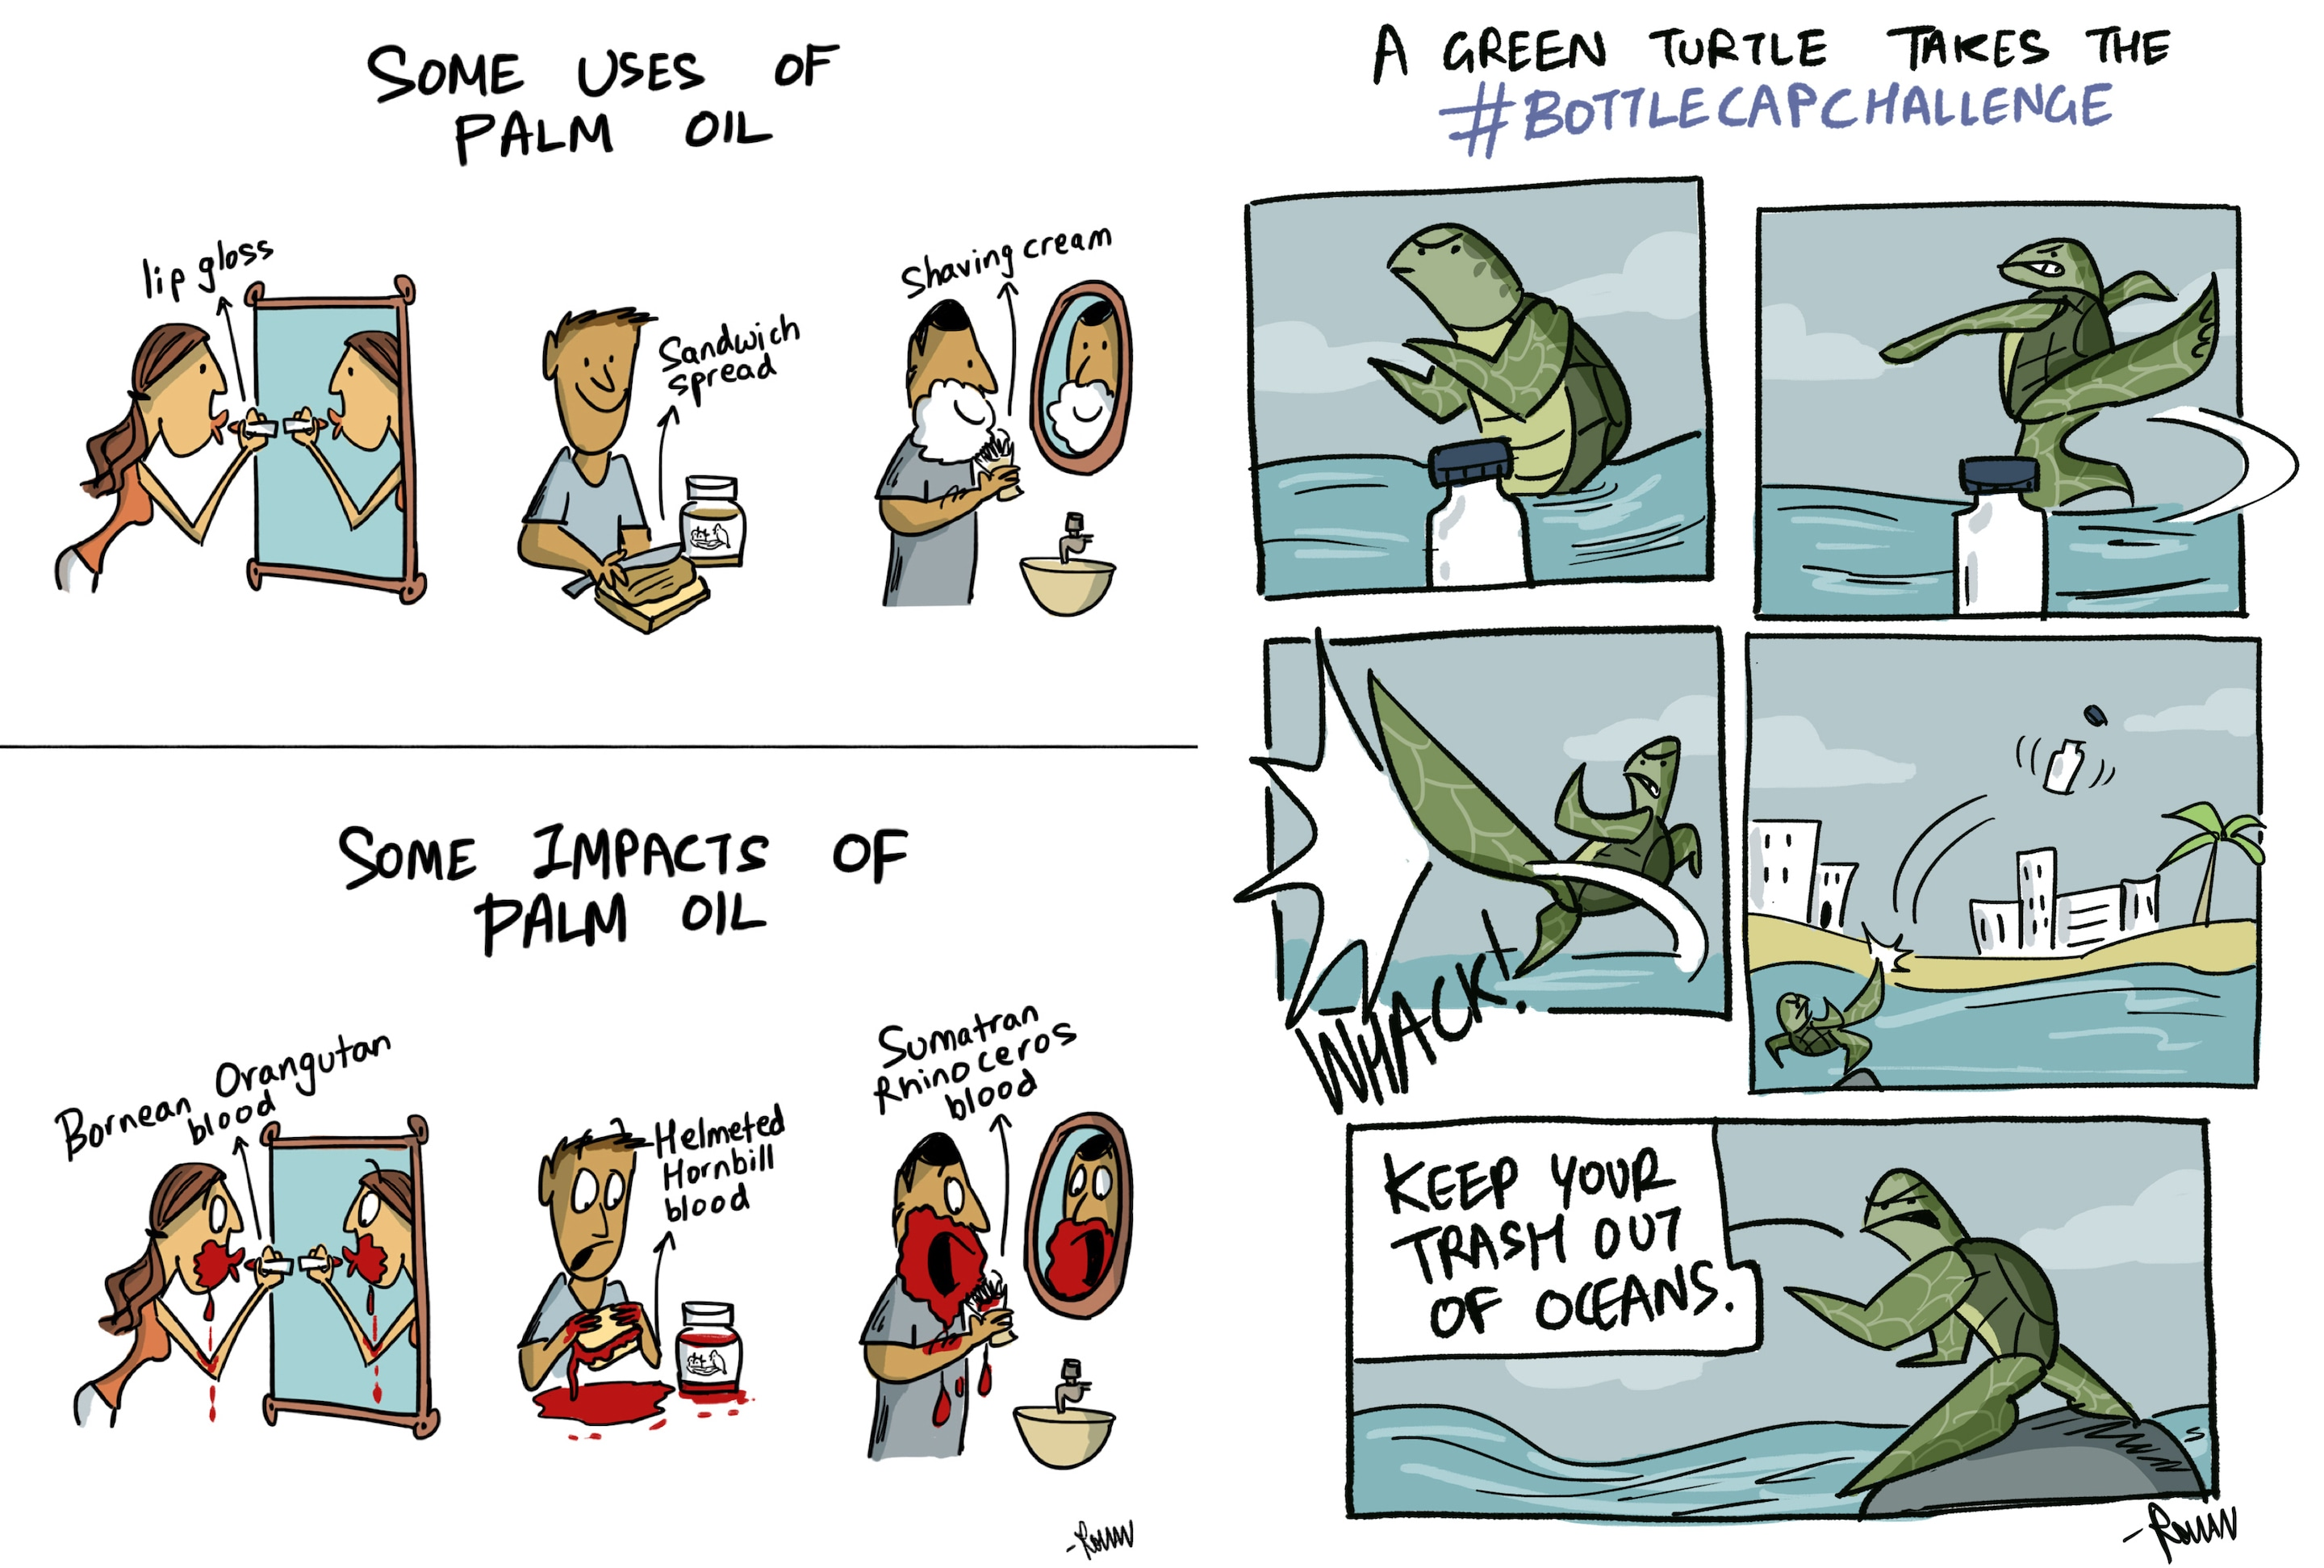 Green Humour comics don't shy away from tackling difficult issues head-on, whether it's the bloody cost of palm oil production or marine pollution. The work is often amplified by others, including personalities like Shashi Tharoor who retweeted the #BottleCapChallenge strip. Photos: First published in The Hindu Sunday Magazine (left); Green Humour (right)